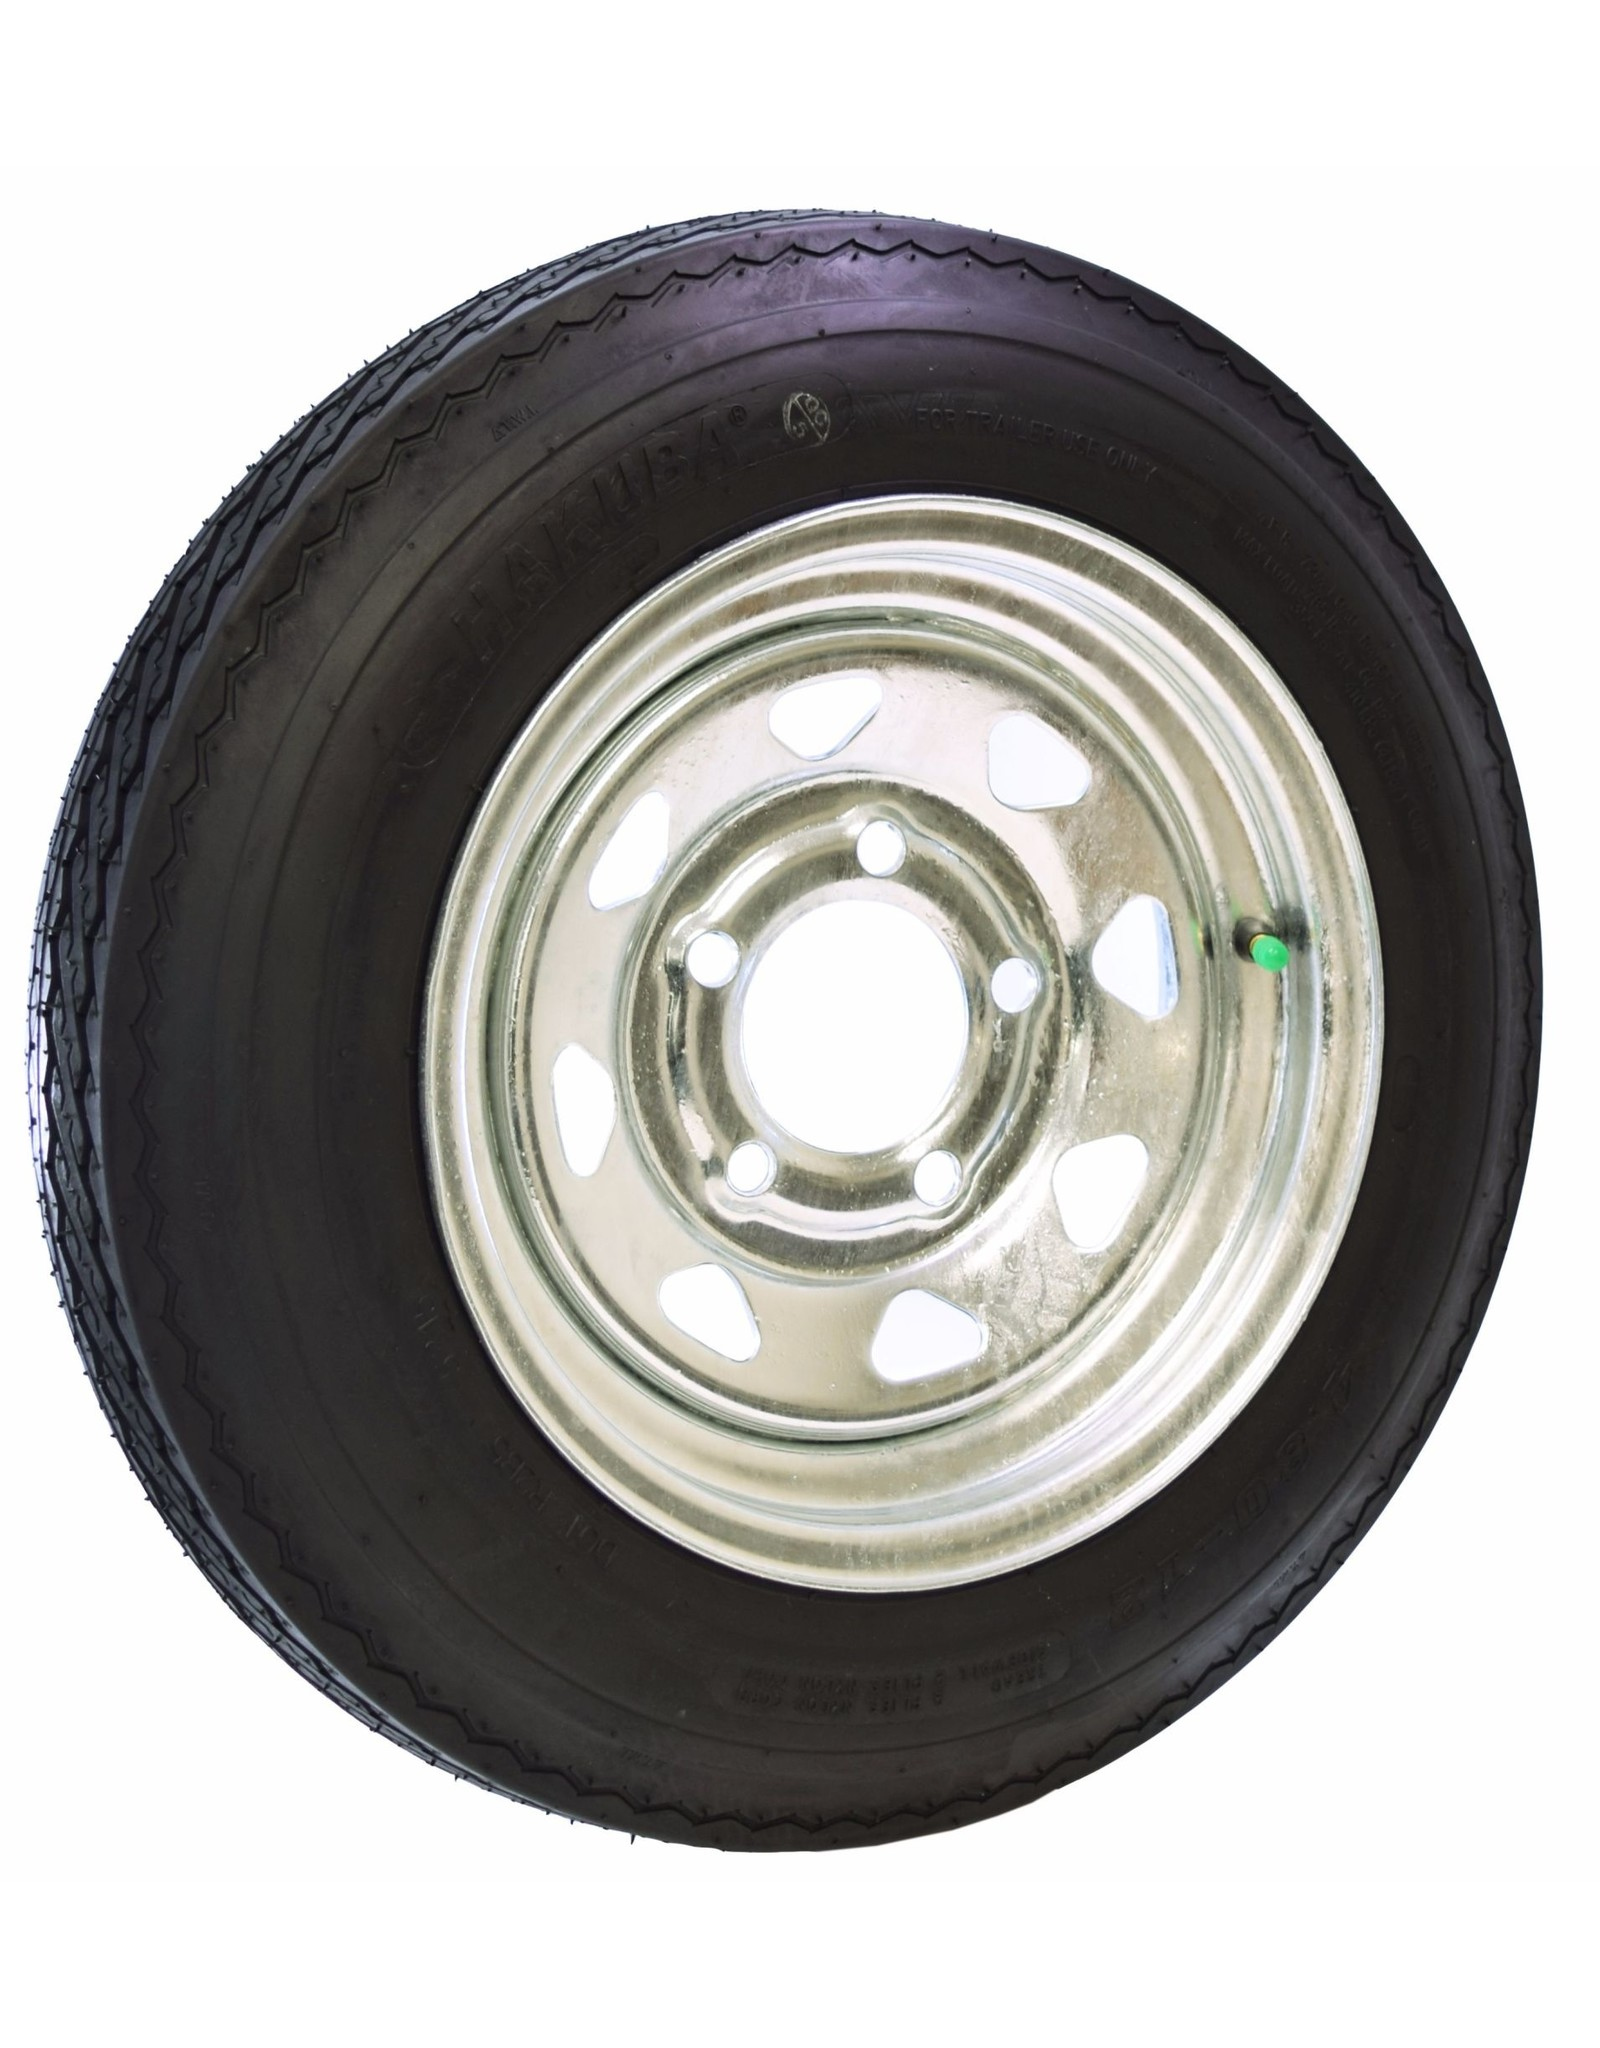 "Malone Auto Rack Malone Spare Tire for MicroSport Trailer - 12"" Galvanized - w/ Locking Attachment"